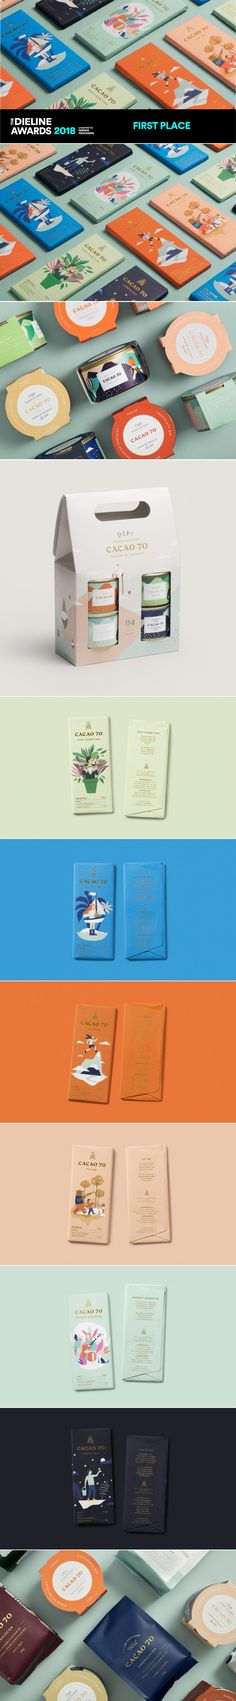 The Dieline Awards 2018: Cacao 70 — The Dieline | Packaging & Branding Design & Innovation News